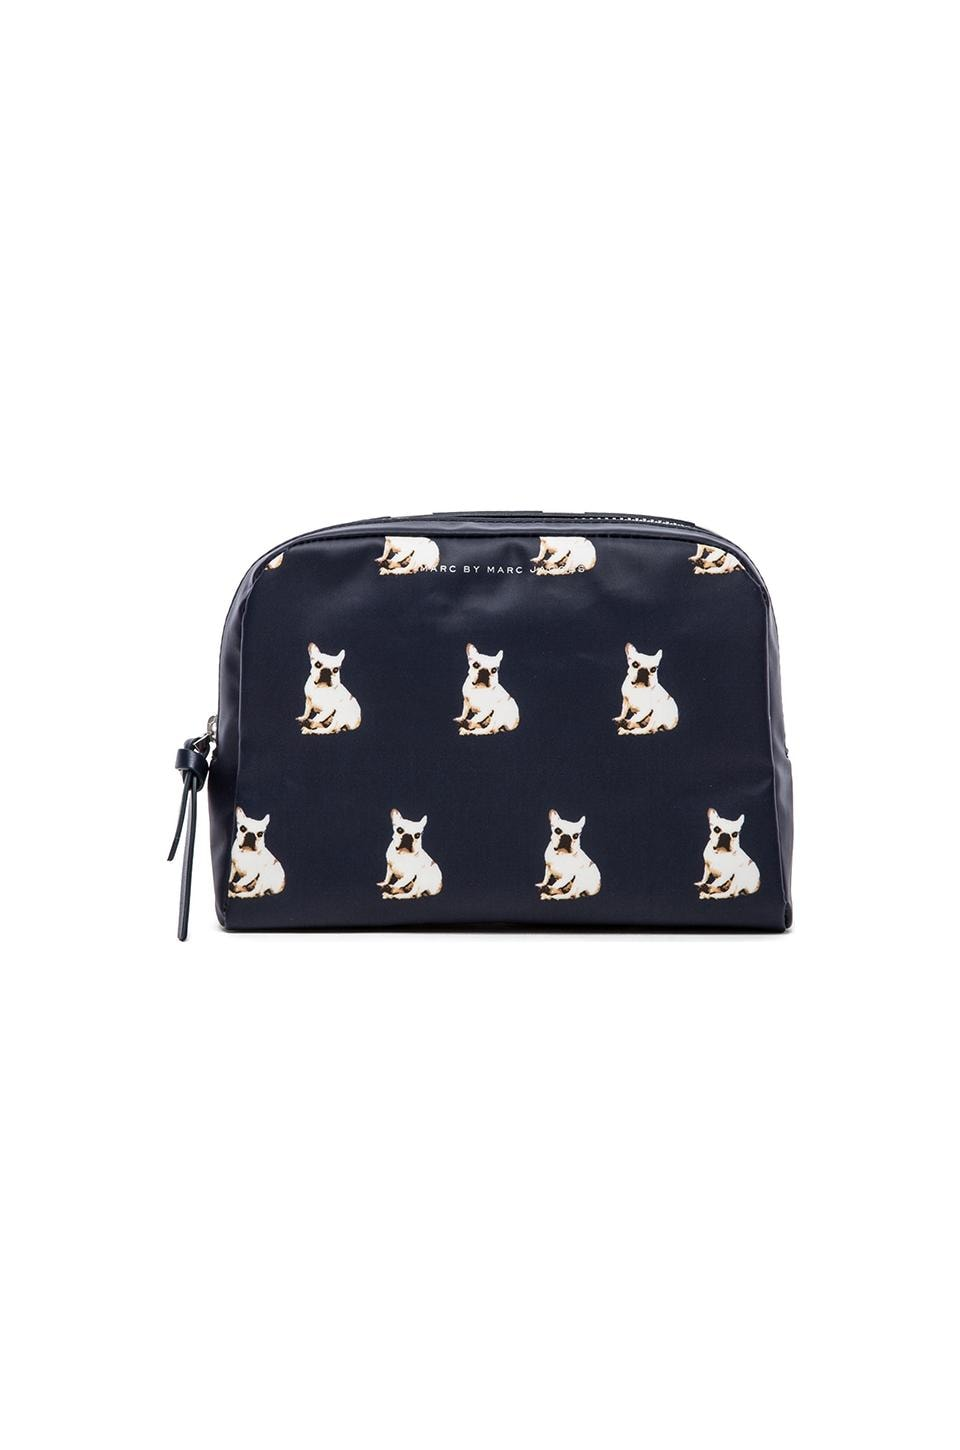 Marc by Marc Jacobs Pets Coated Canvas Large Cosmetic Pouch in Gettysburg Blue Multi